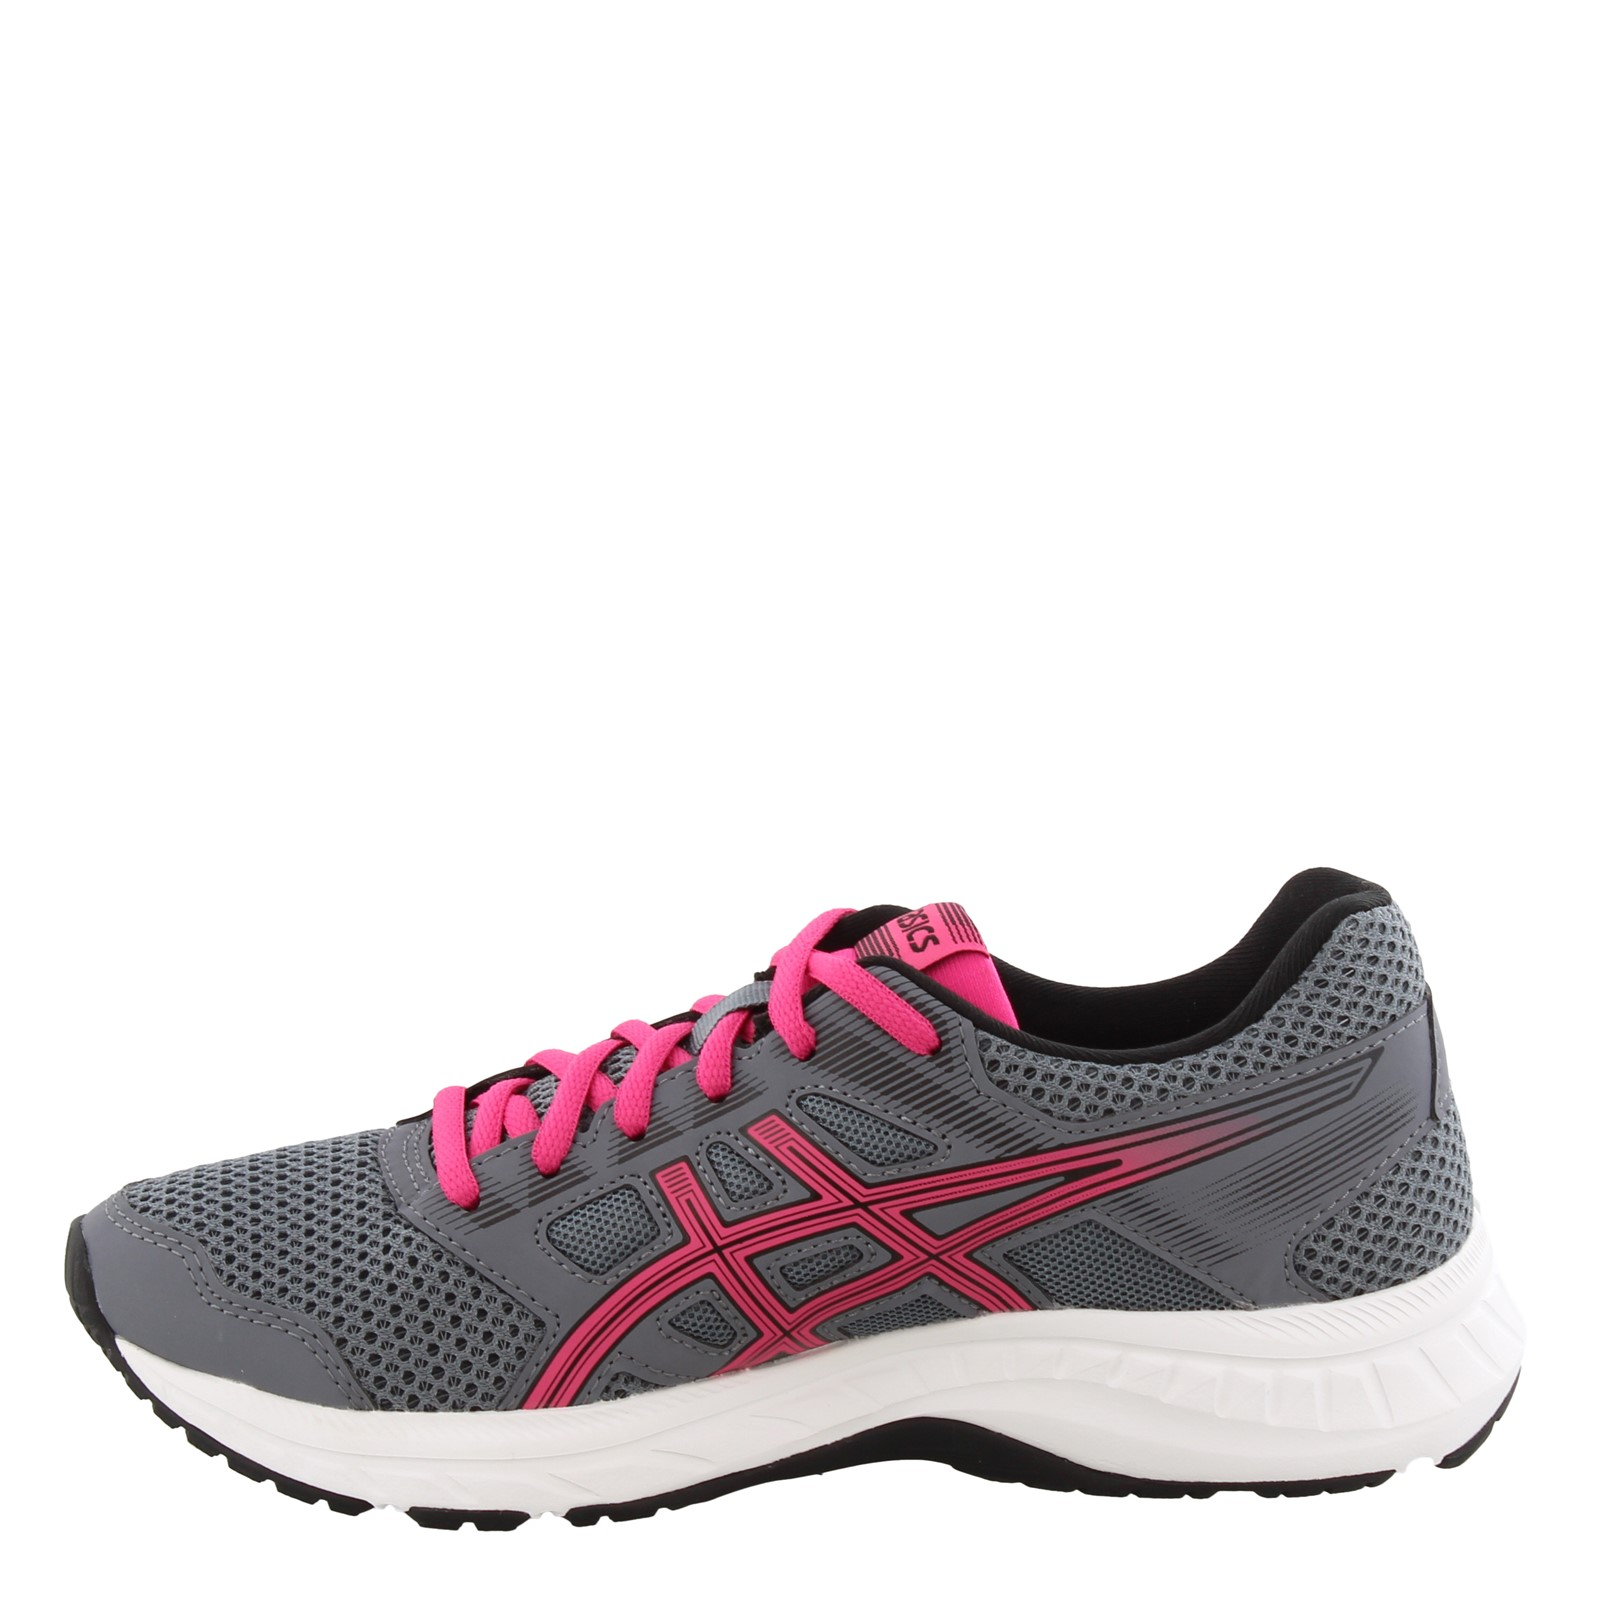 Women's Asics, Gel Contend 5 Running Shoes